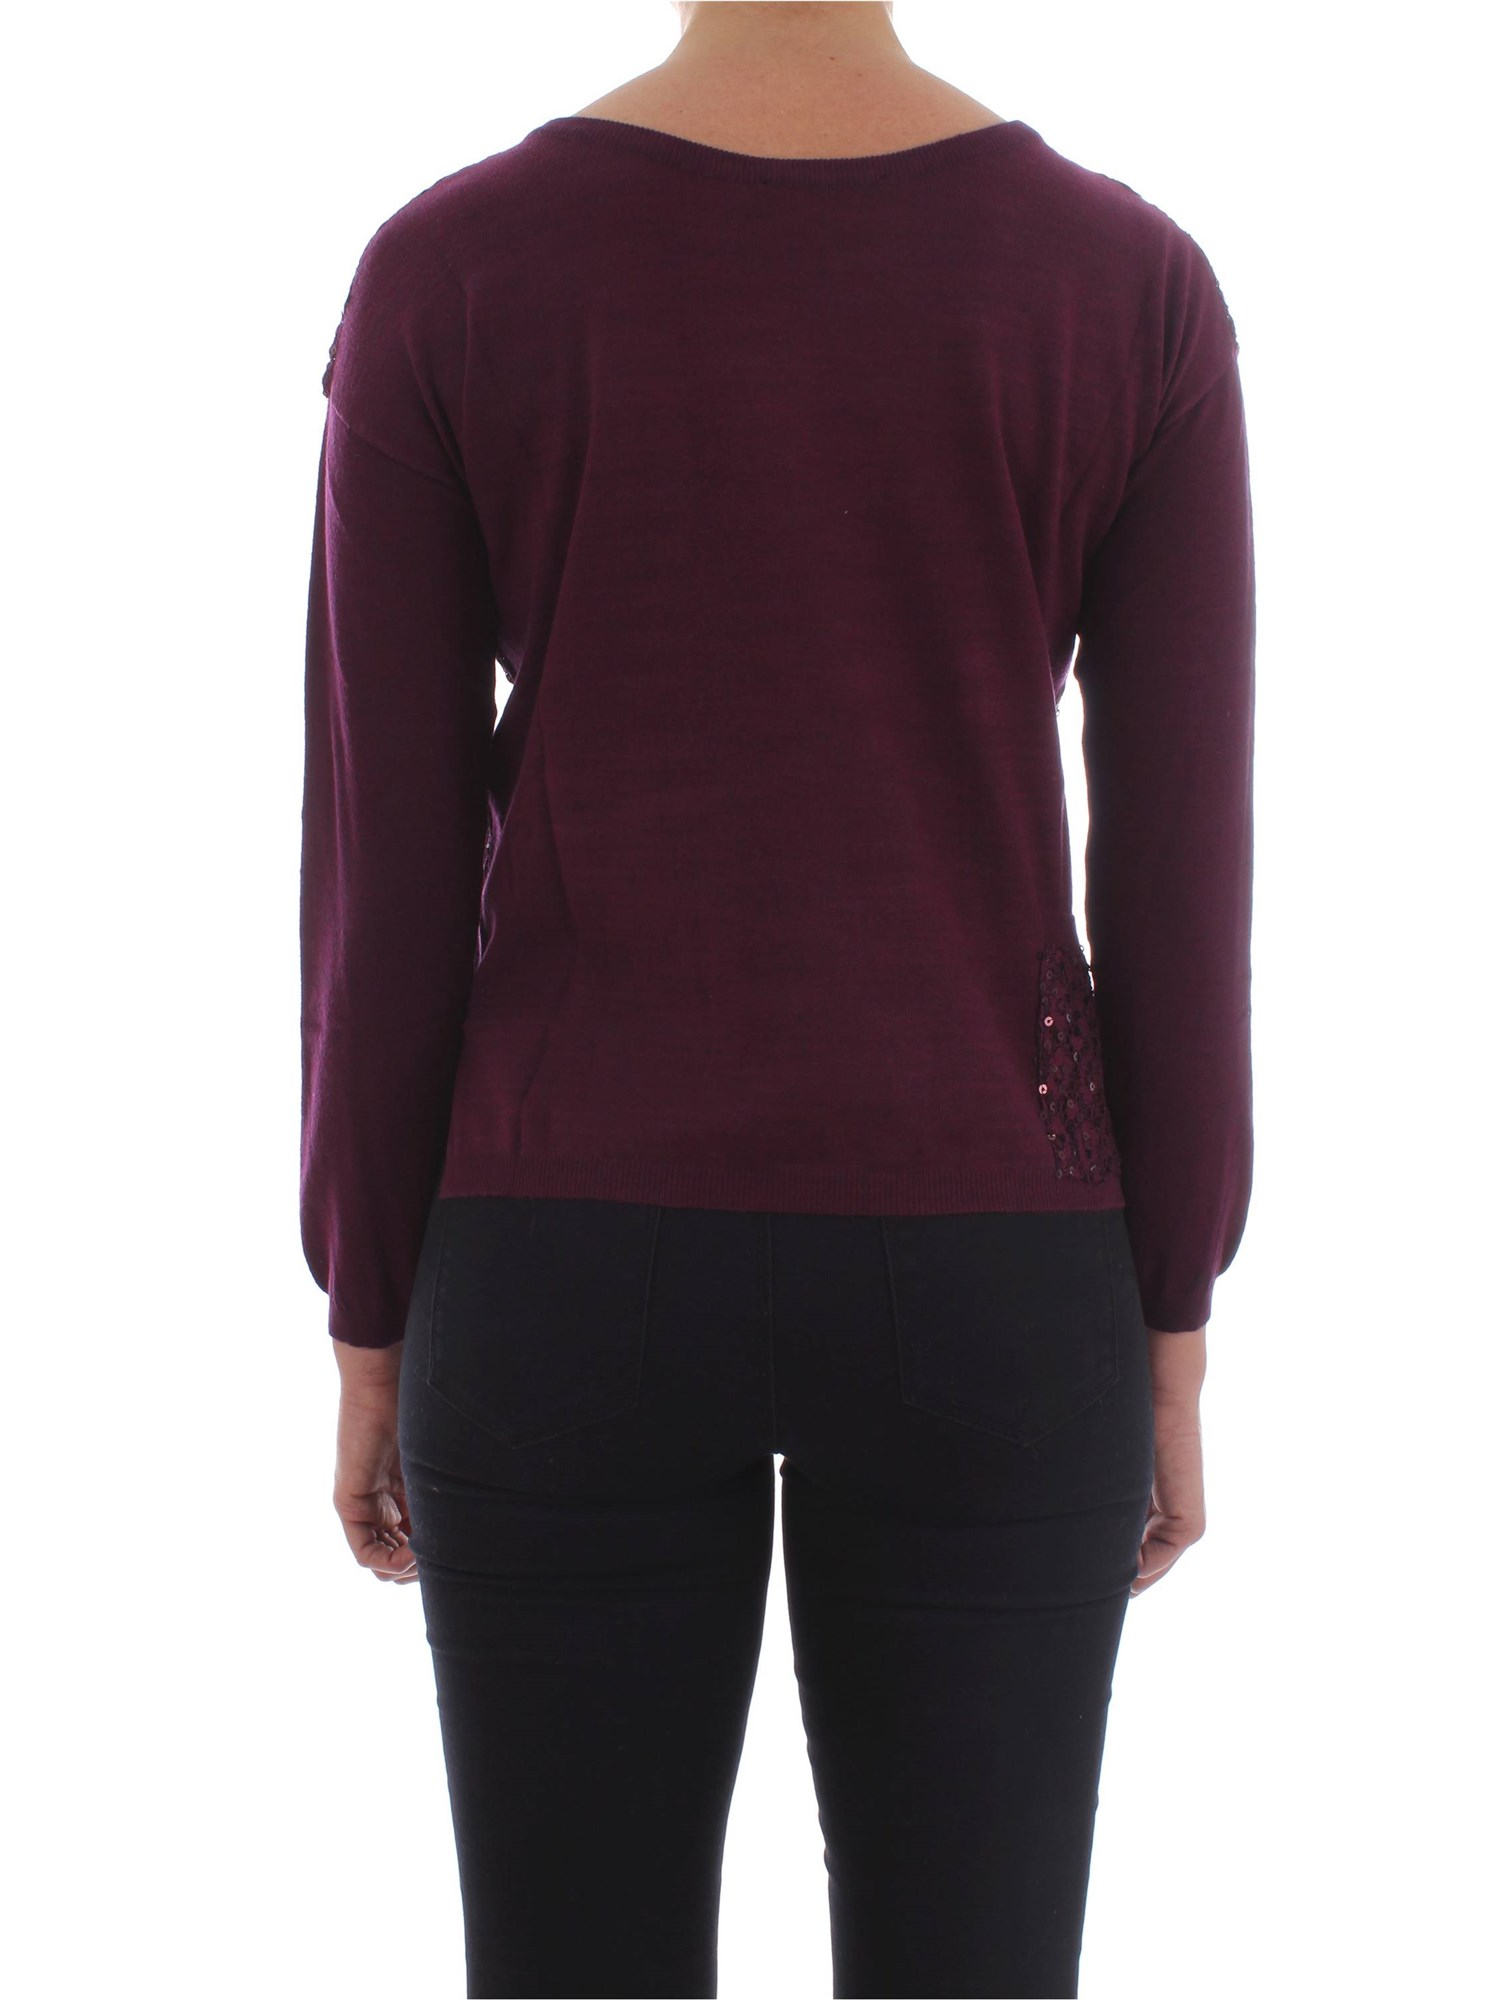 Wa0rbqxx Jumper Now 1480e9269 Gonzaga Gruppo On Buy Dei Corte Woman AzRzaqS